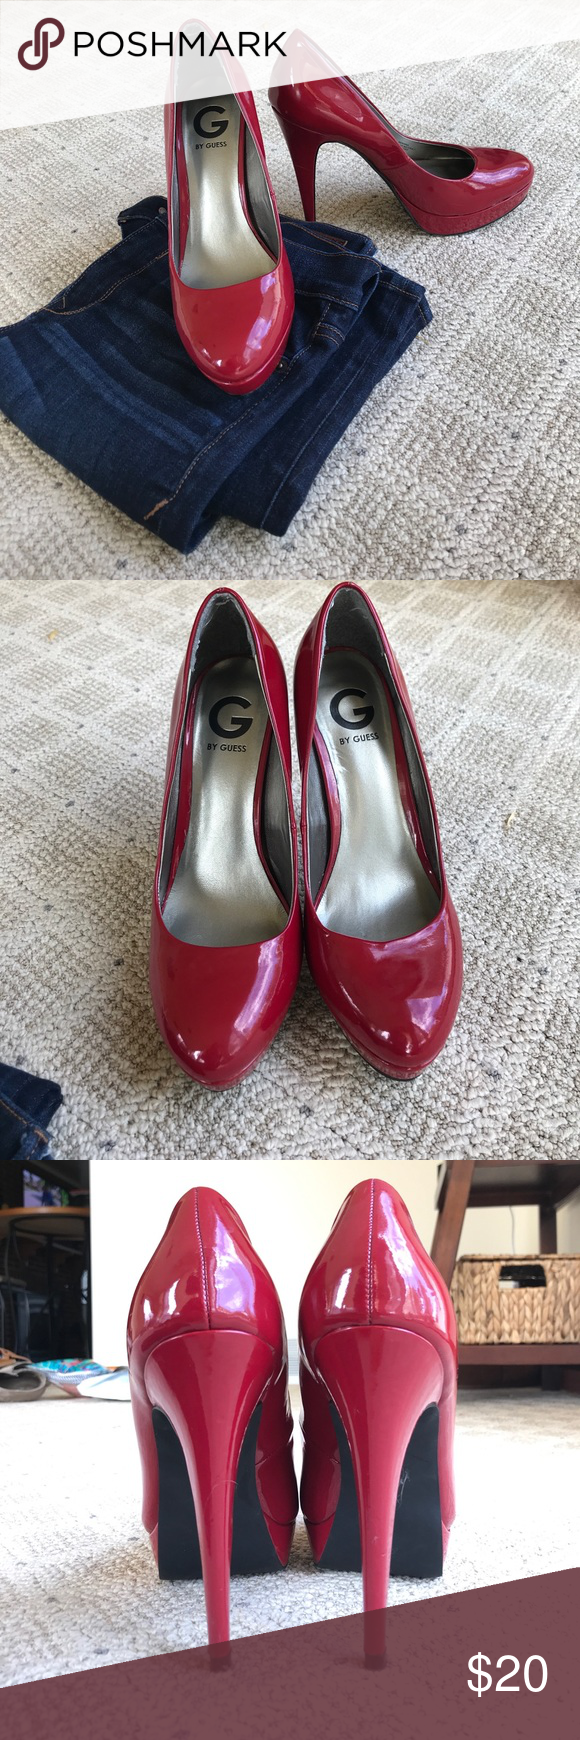 60a706ea26b Guess Red Patent Leather Pumps Size 9 red heels, only worn a handful ...